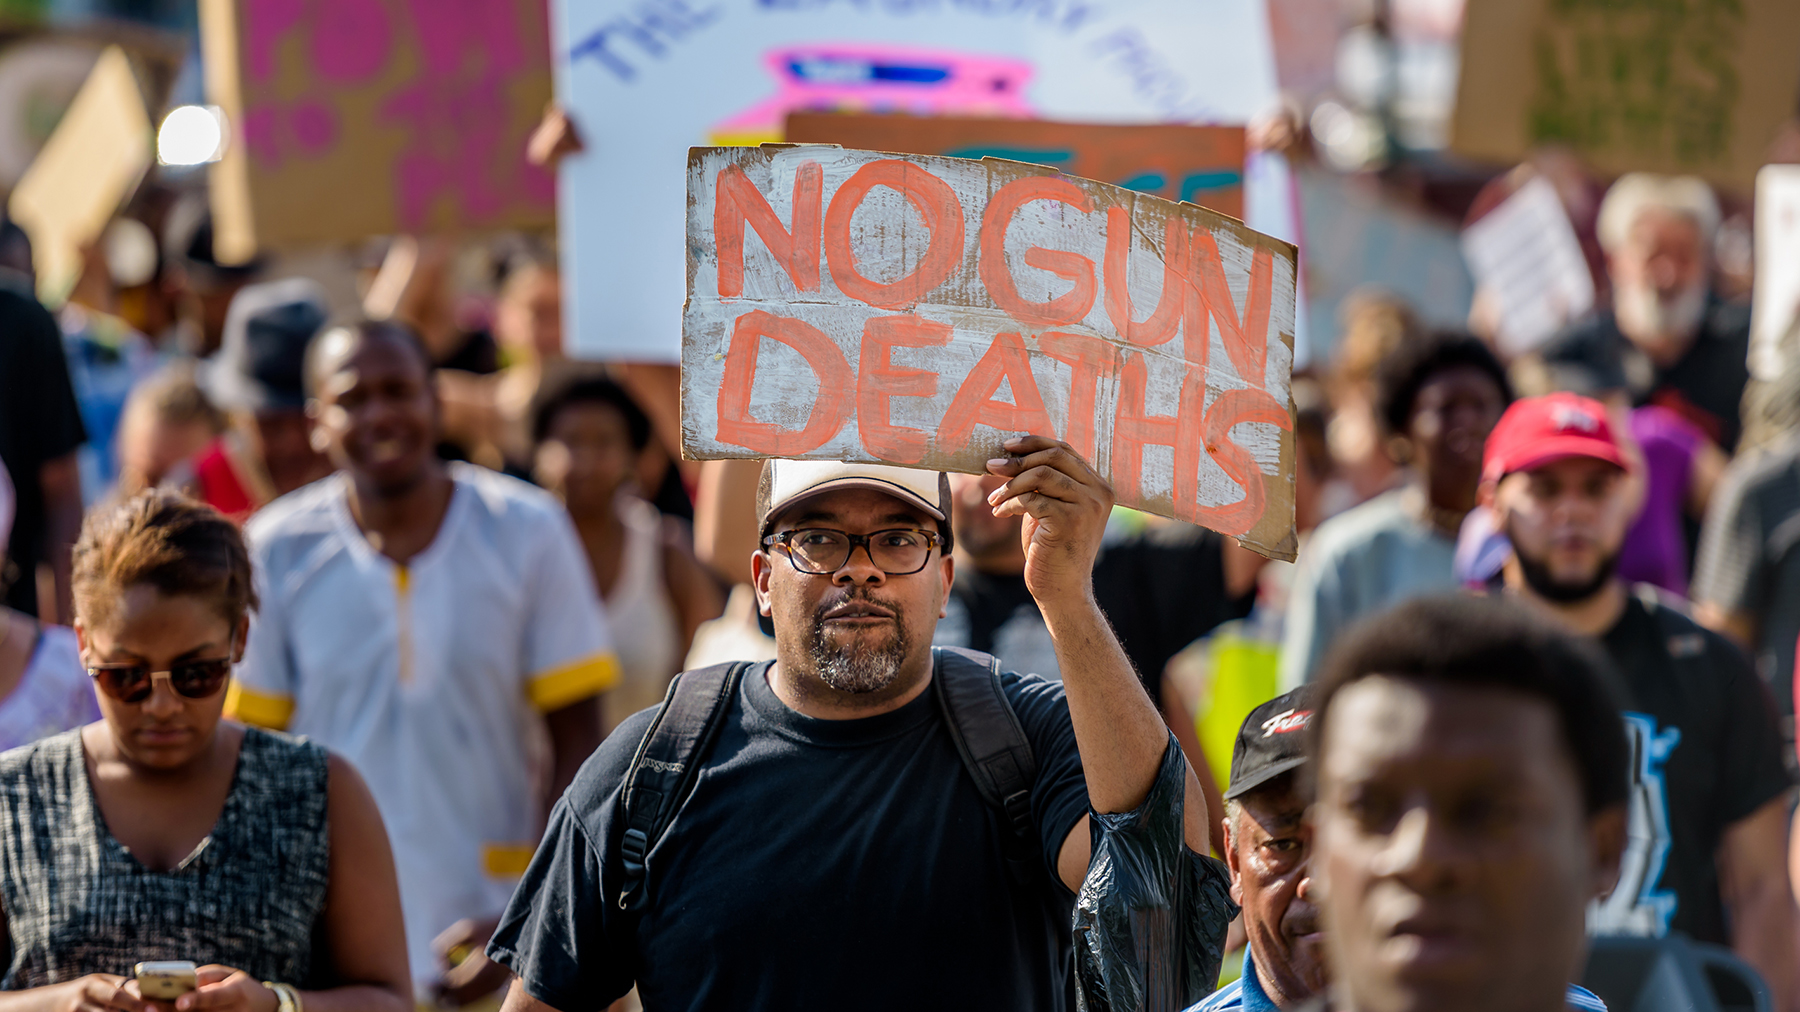 On the second anniversary of the death of Eric Garner by